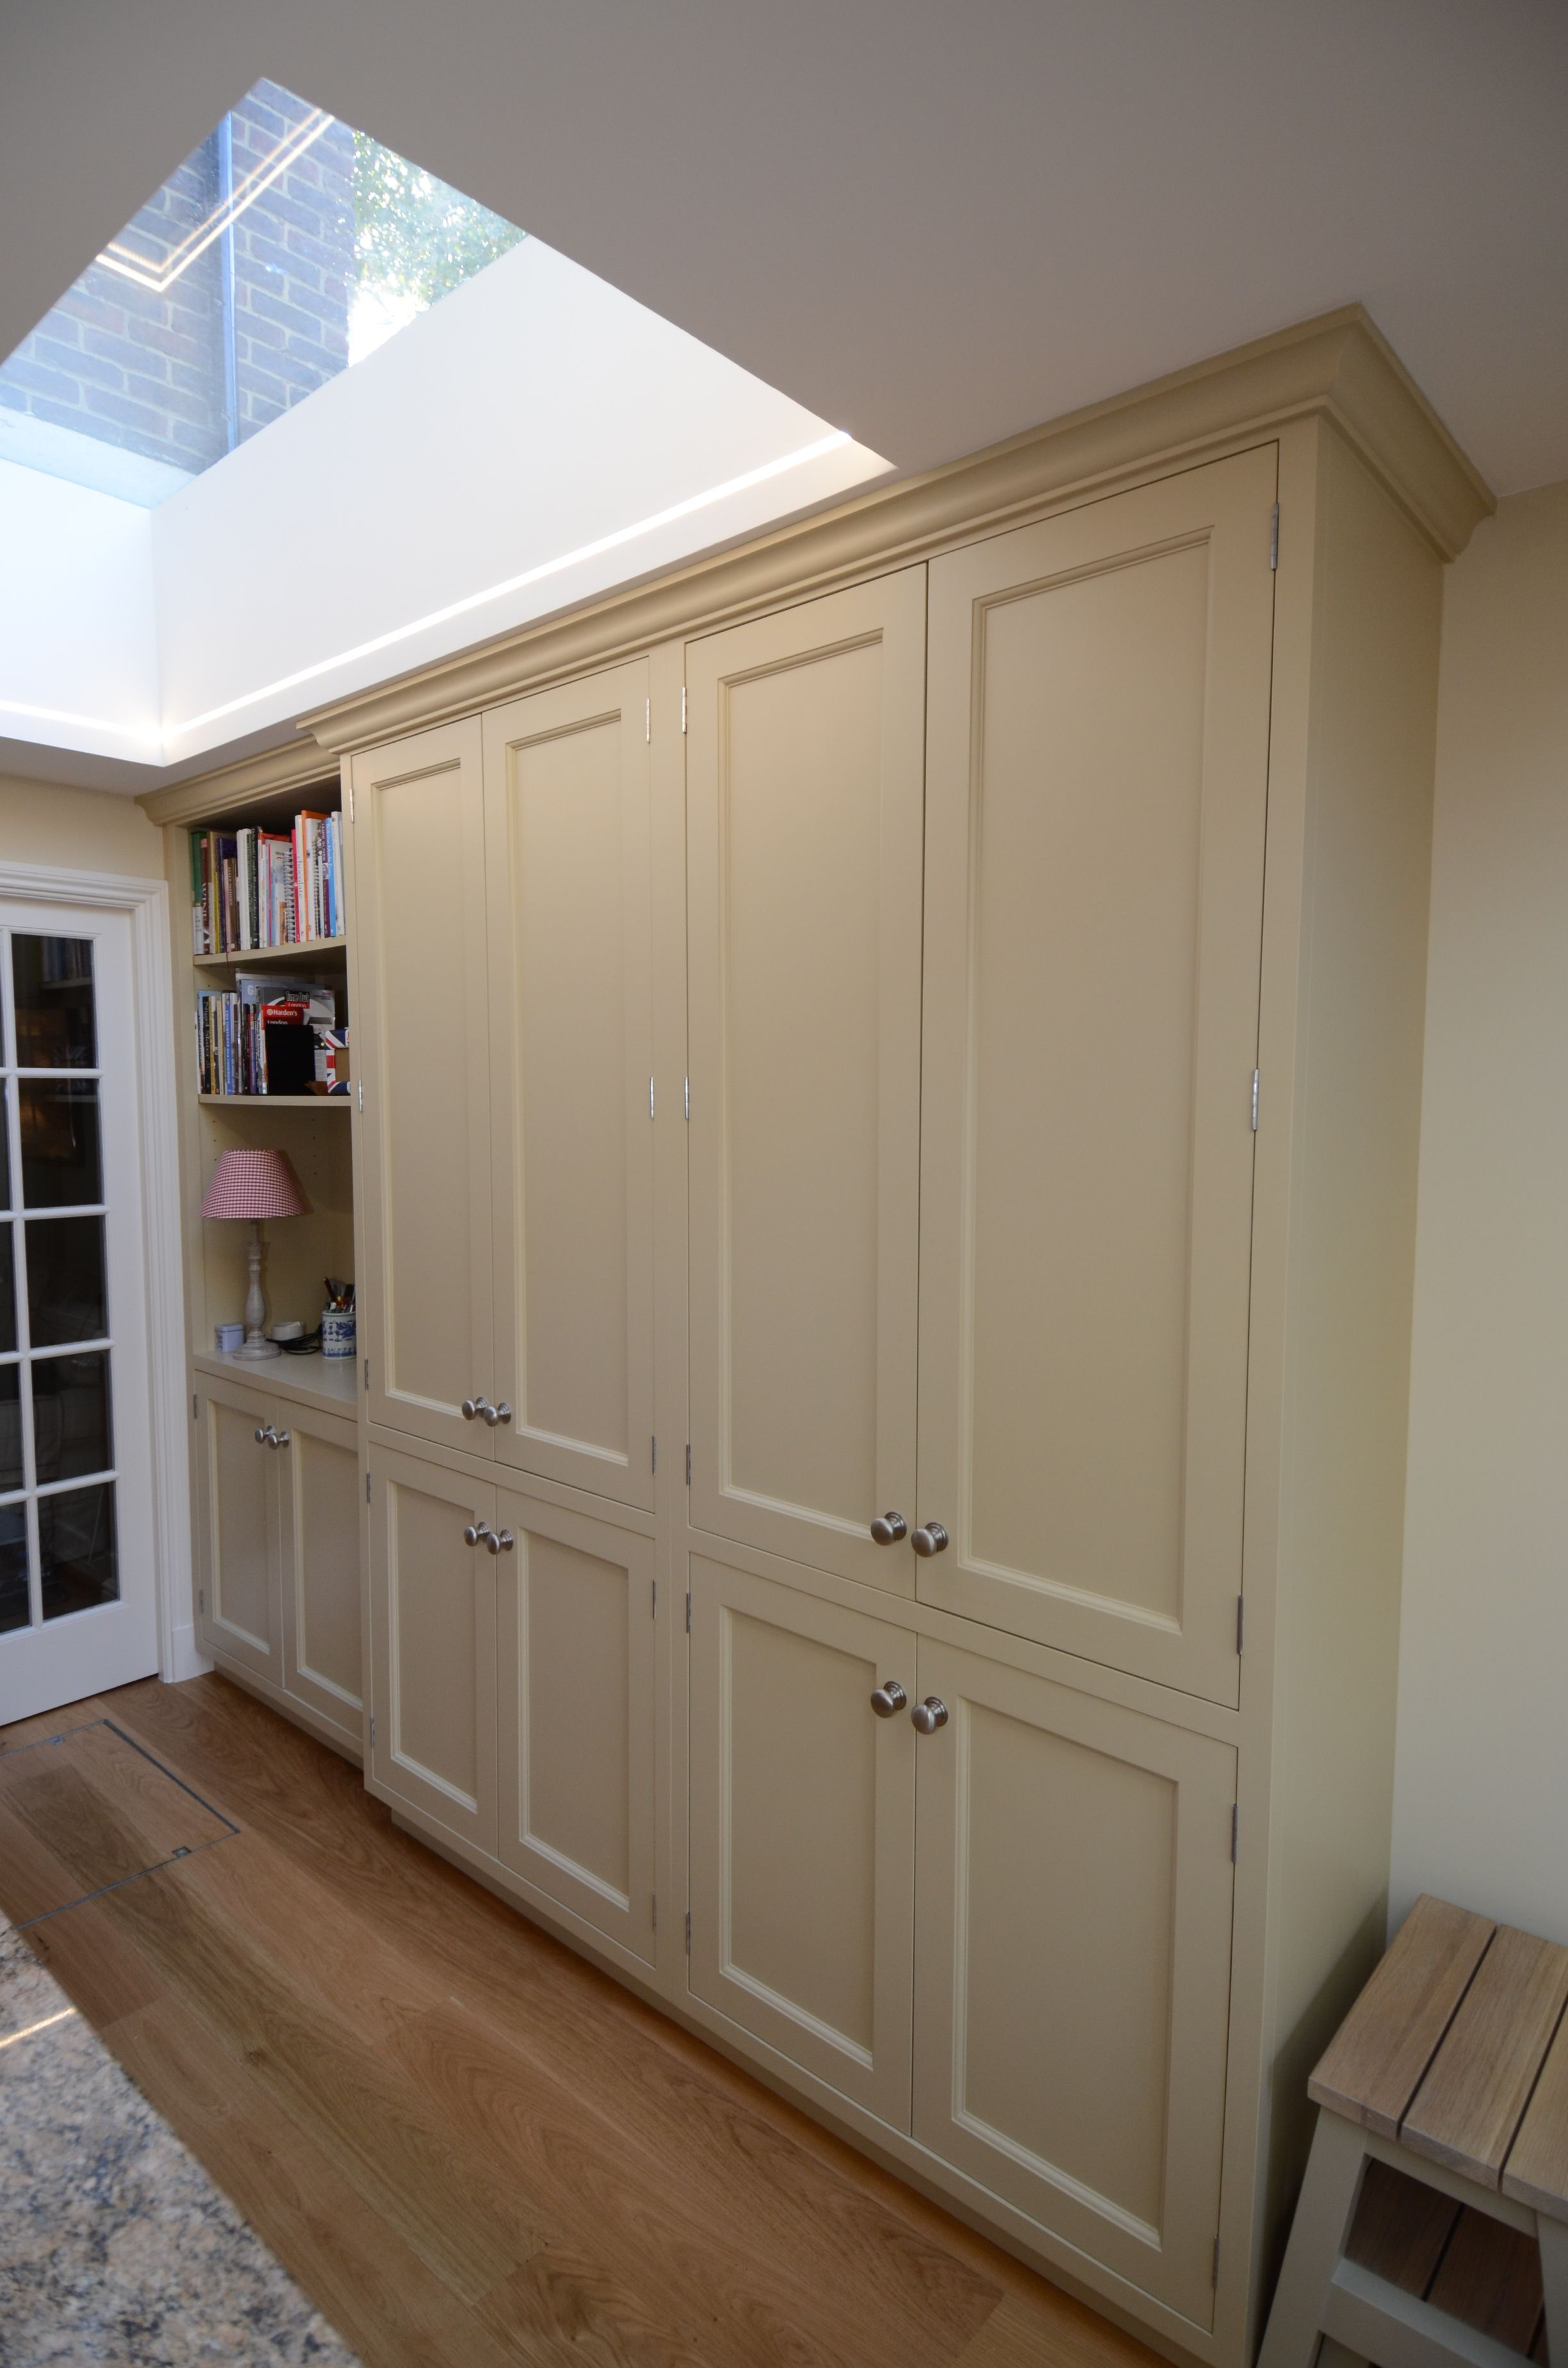 Large kitchen larder and bookcases. Spice racks on the ...